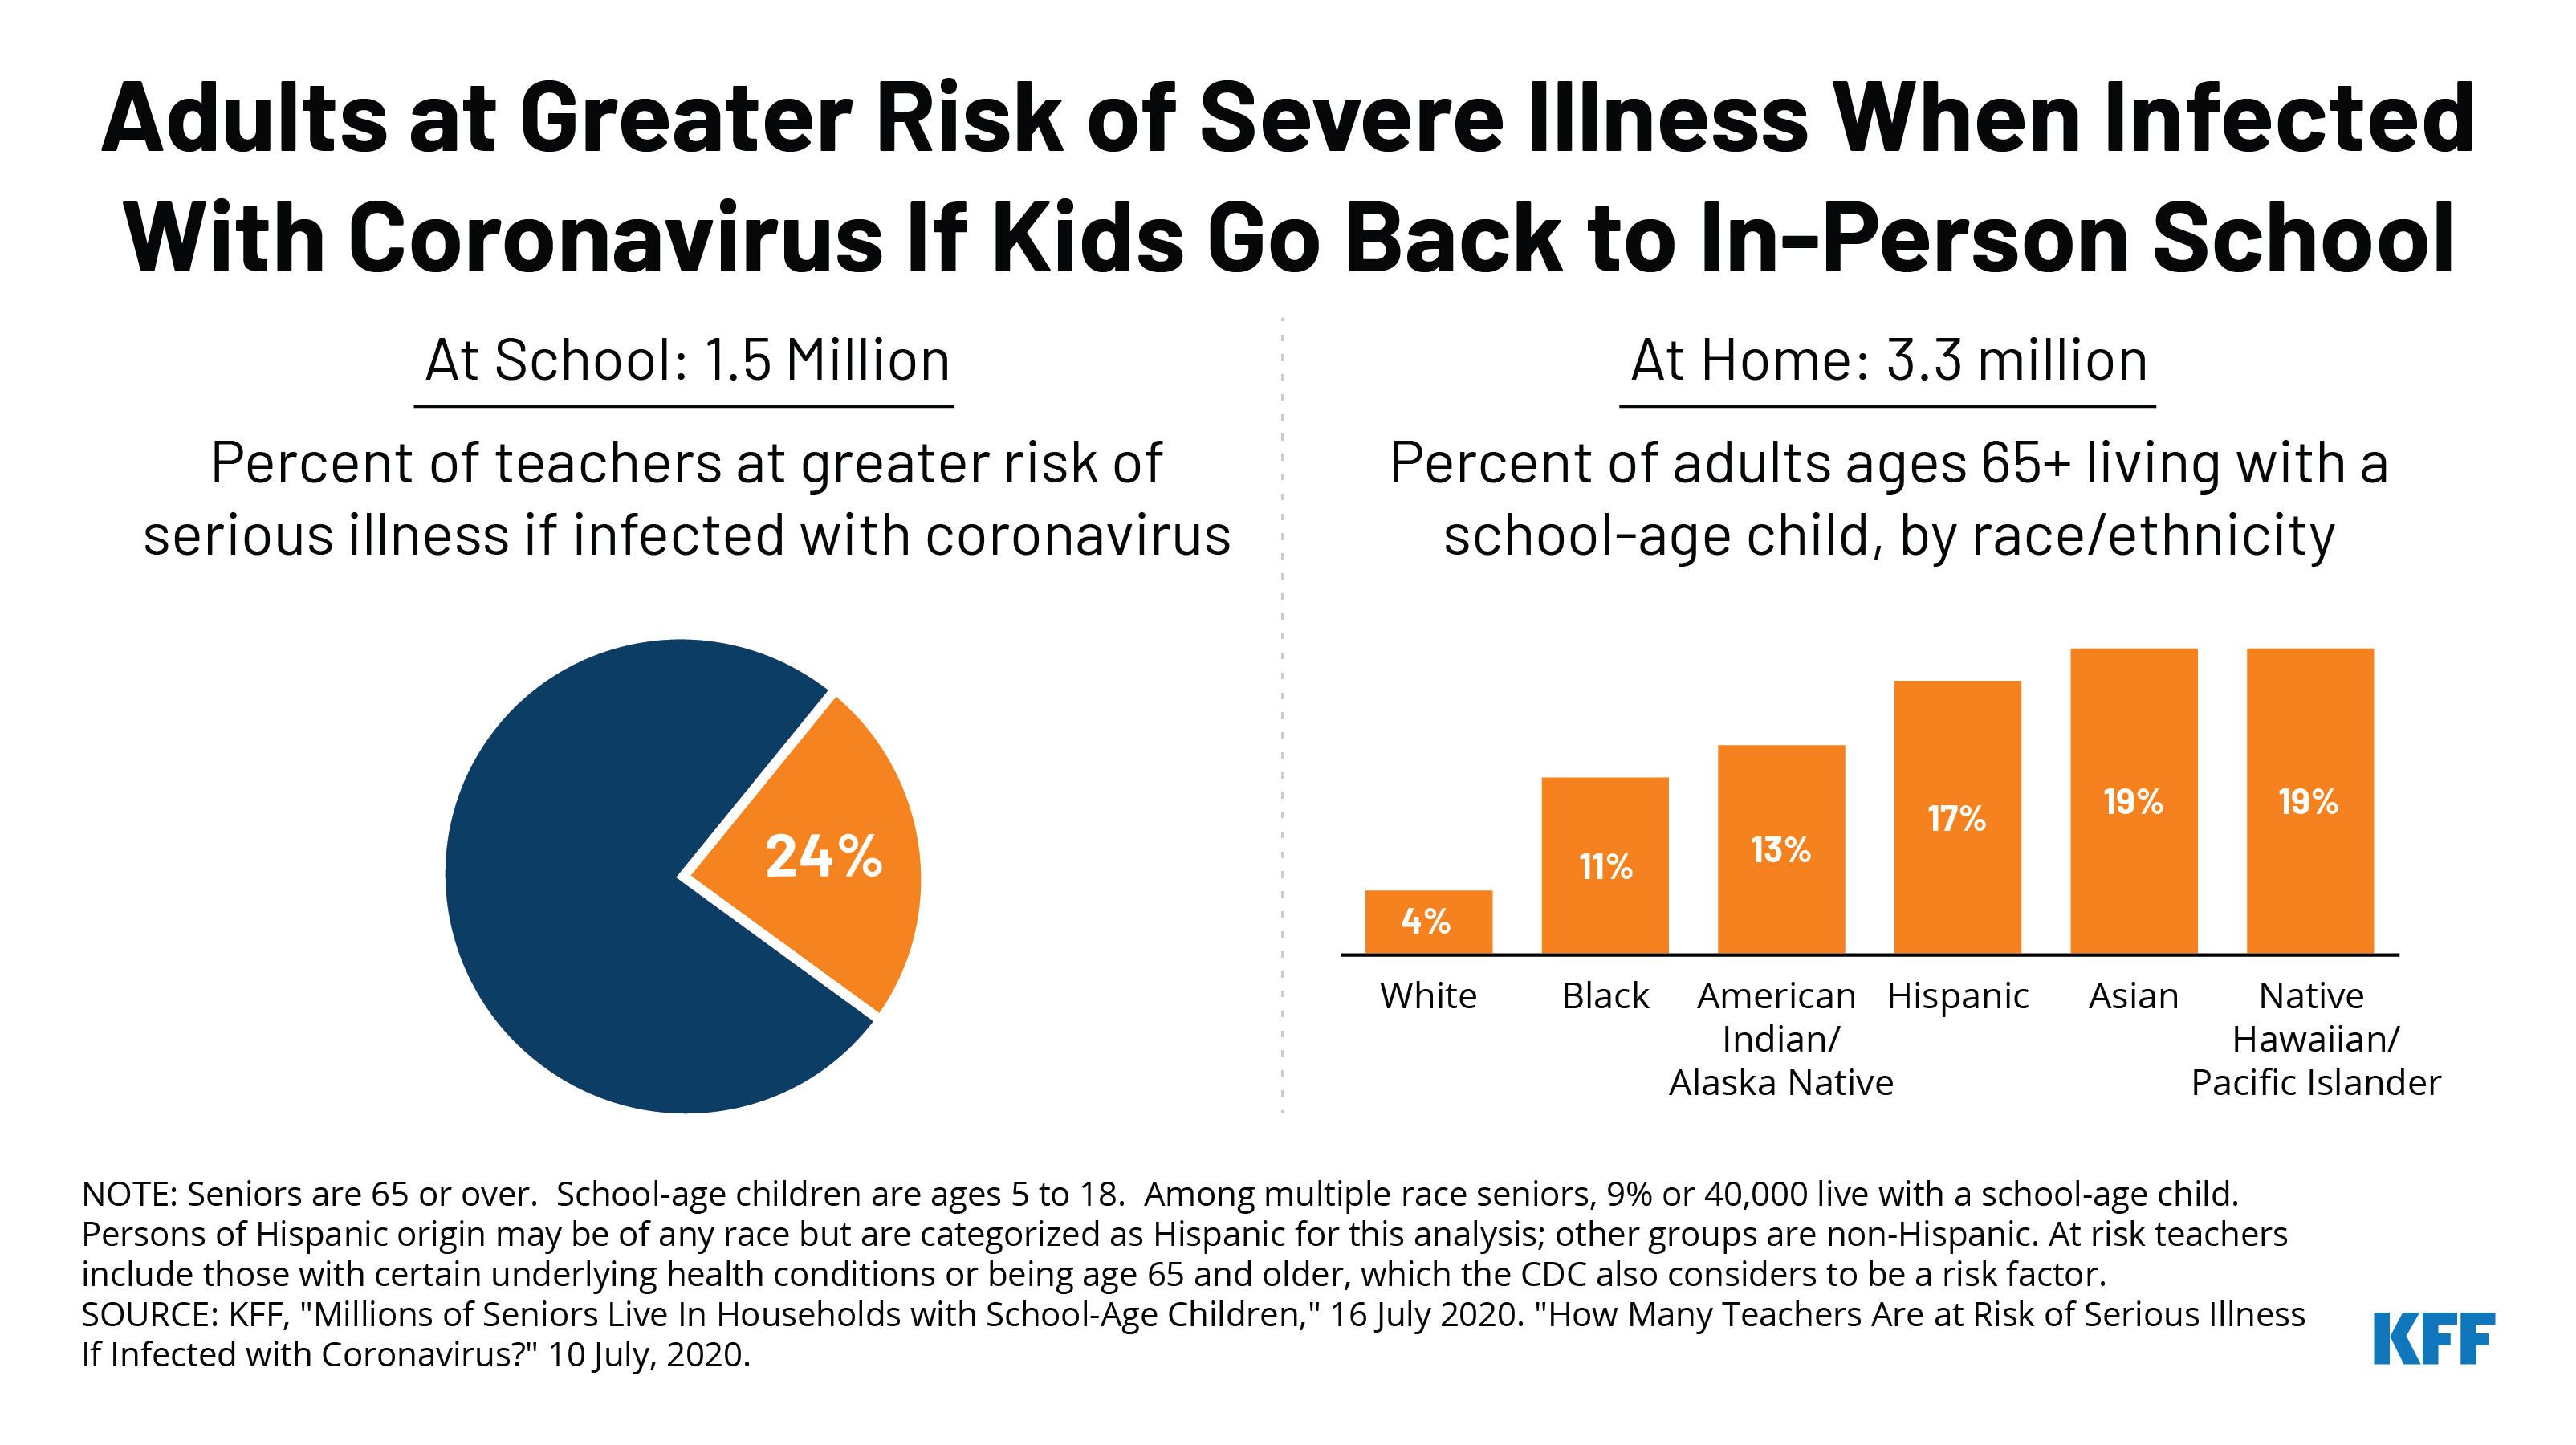 Adults at risk of serious illness from coronavirus if kids go back to school in person